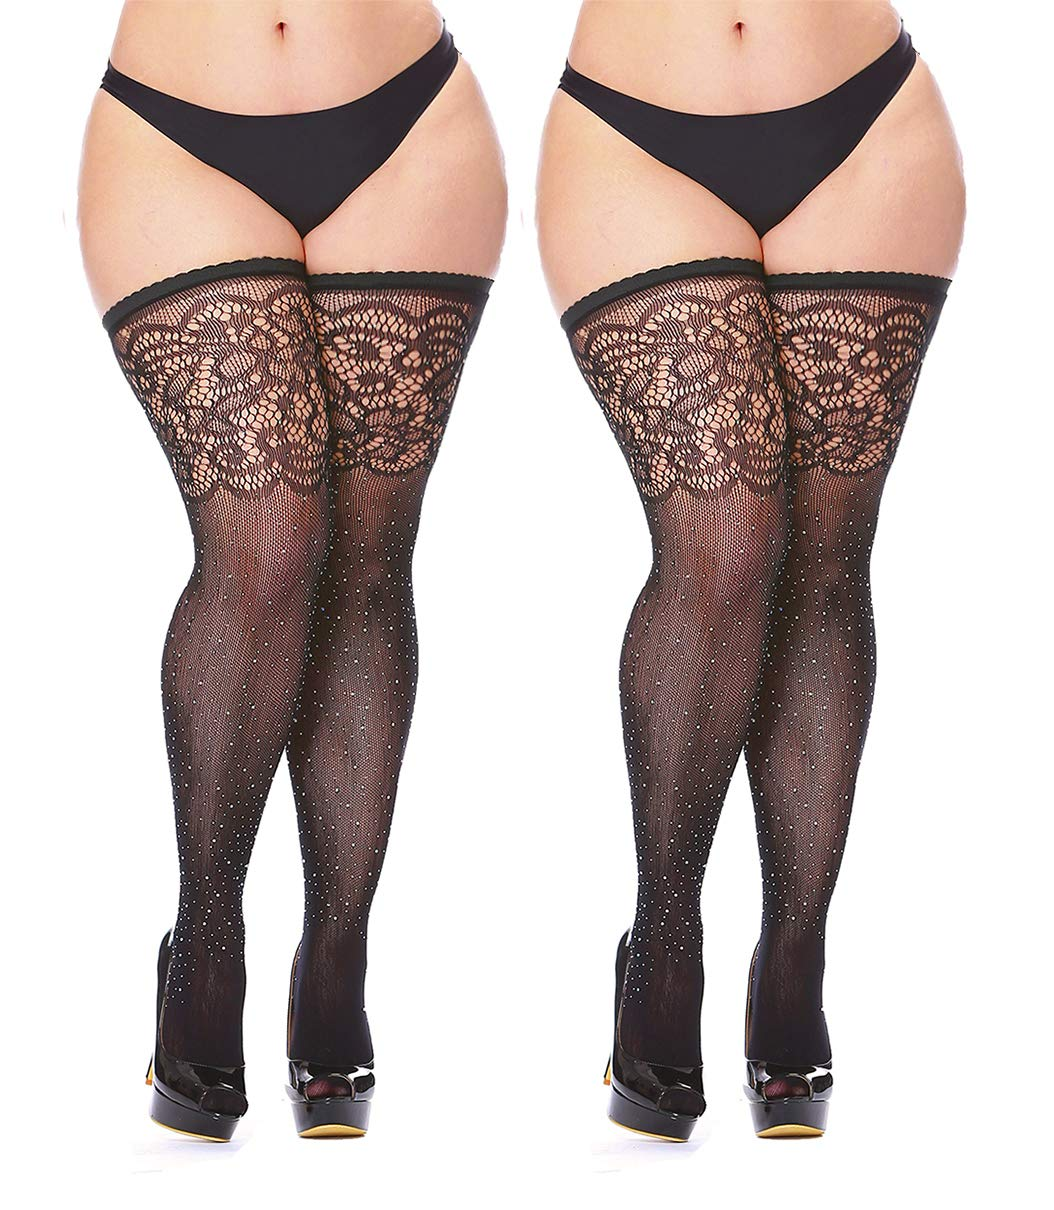 Women's Black Fishnet Thigh Highs Plus Size Stay-up Rhinestone Stocking 2 Pairs